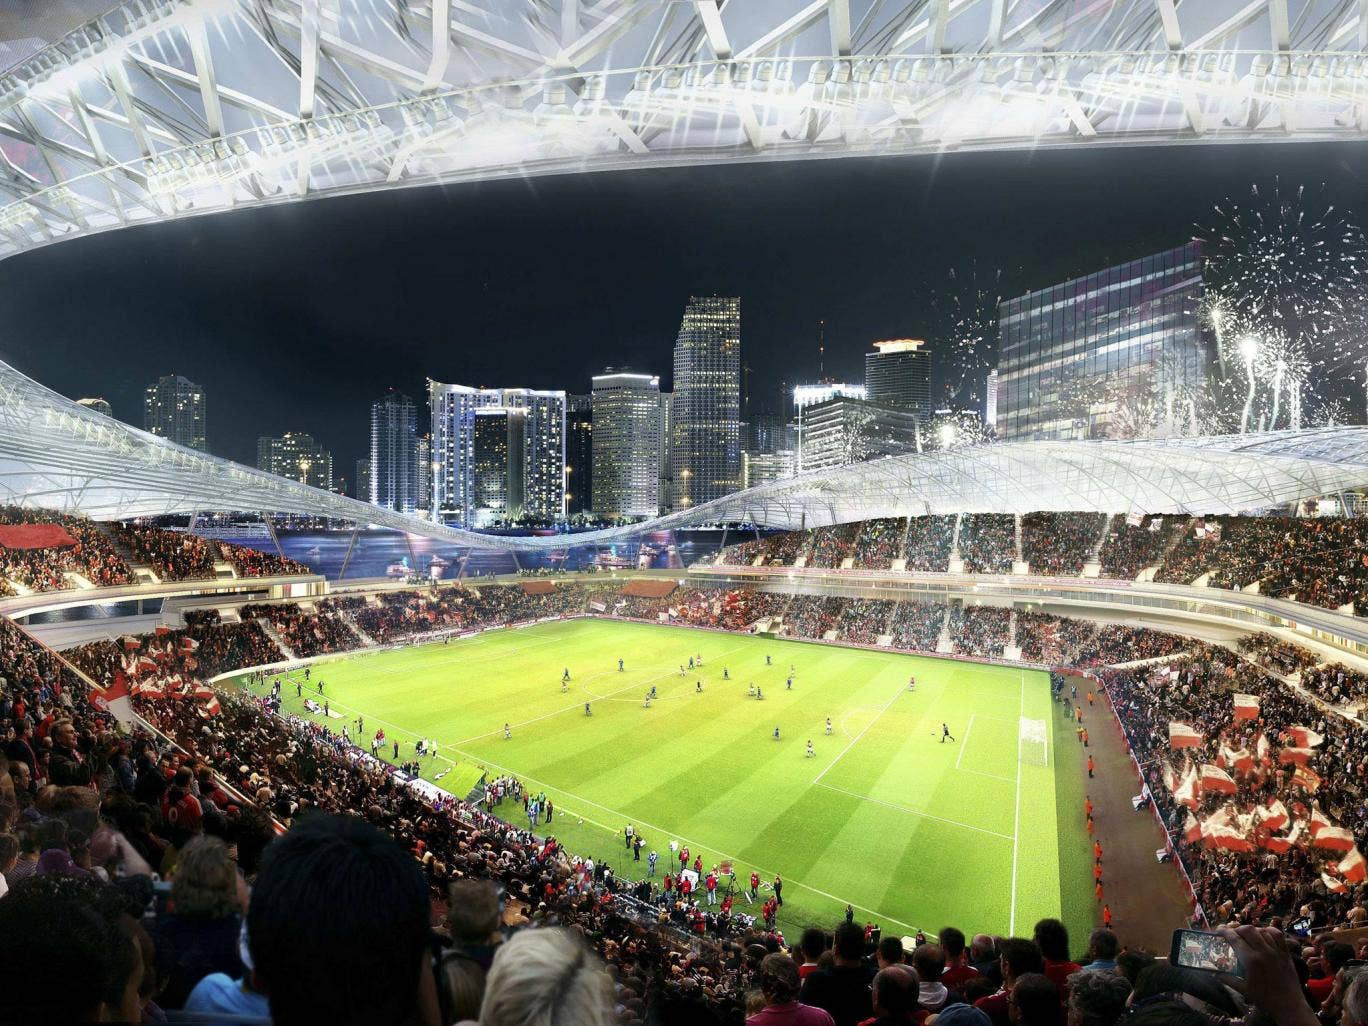 A proposed stadium for a Major League Soccer (MLS) team backed by retired English soccer star David Beckham of the group's preferred location for the arena seated in between Biscayne Bay and downtown Miami, Florida